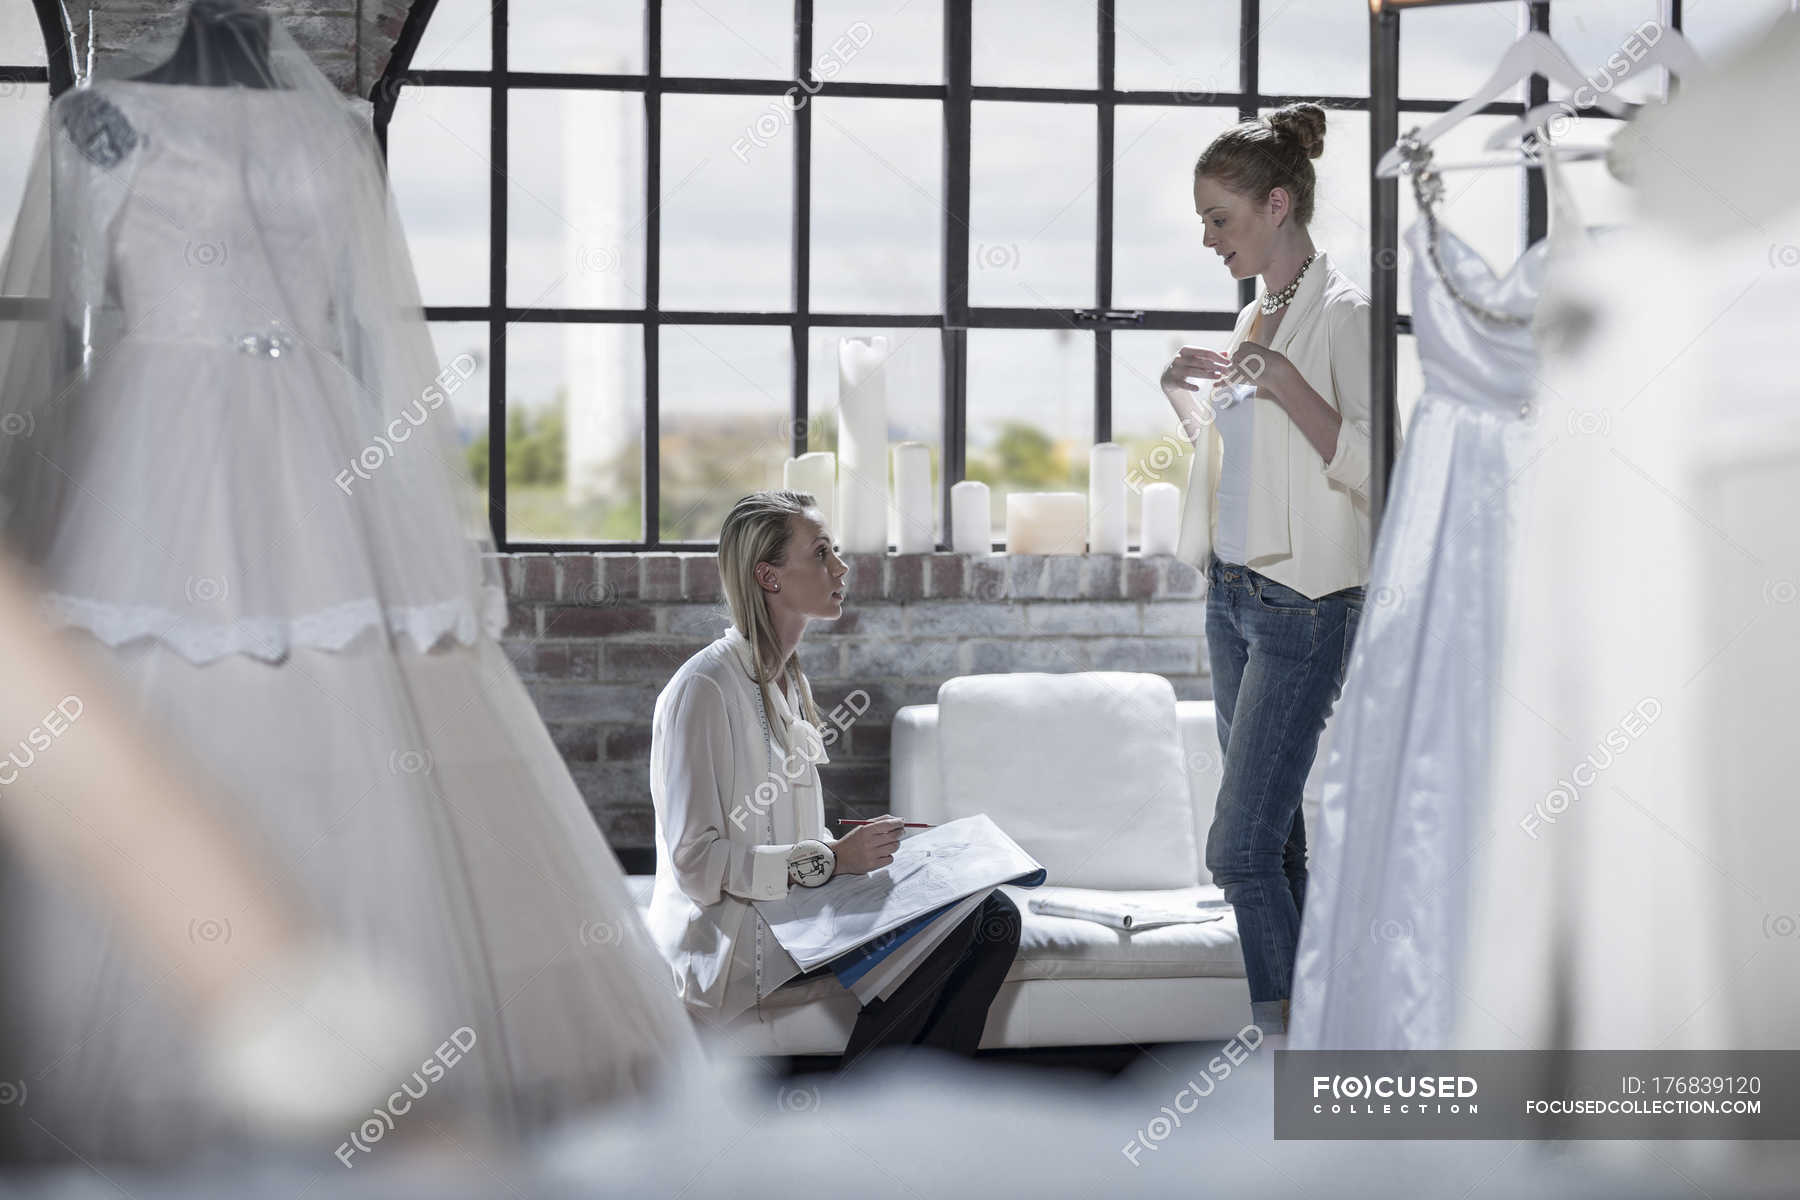 Designer And Bride To Be Discussing Wedding Dress In Fashion Studio Daytime Confidence Stock Photo 176839120